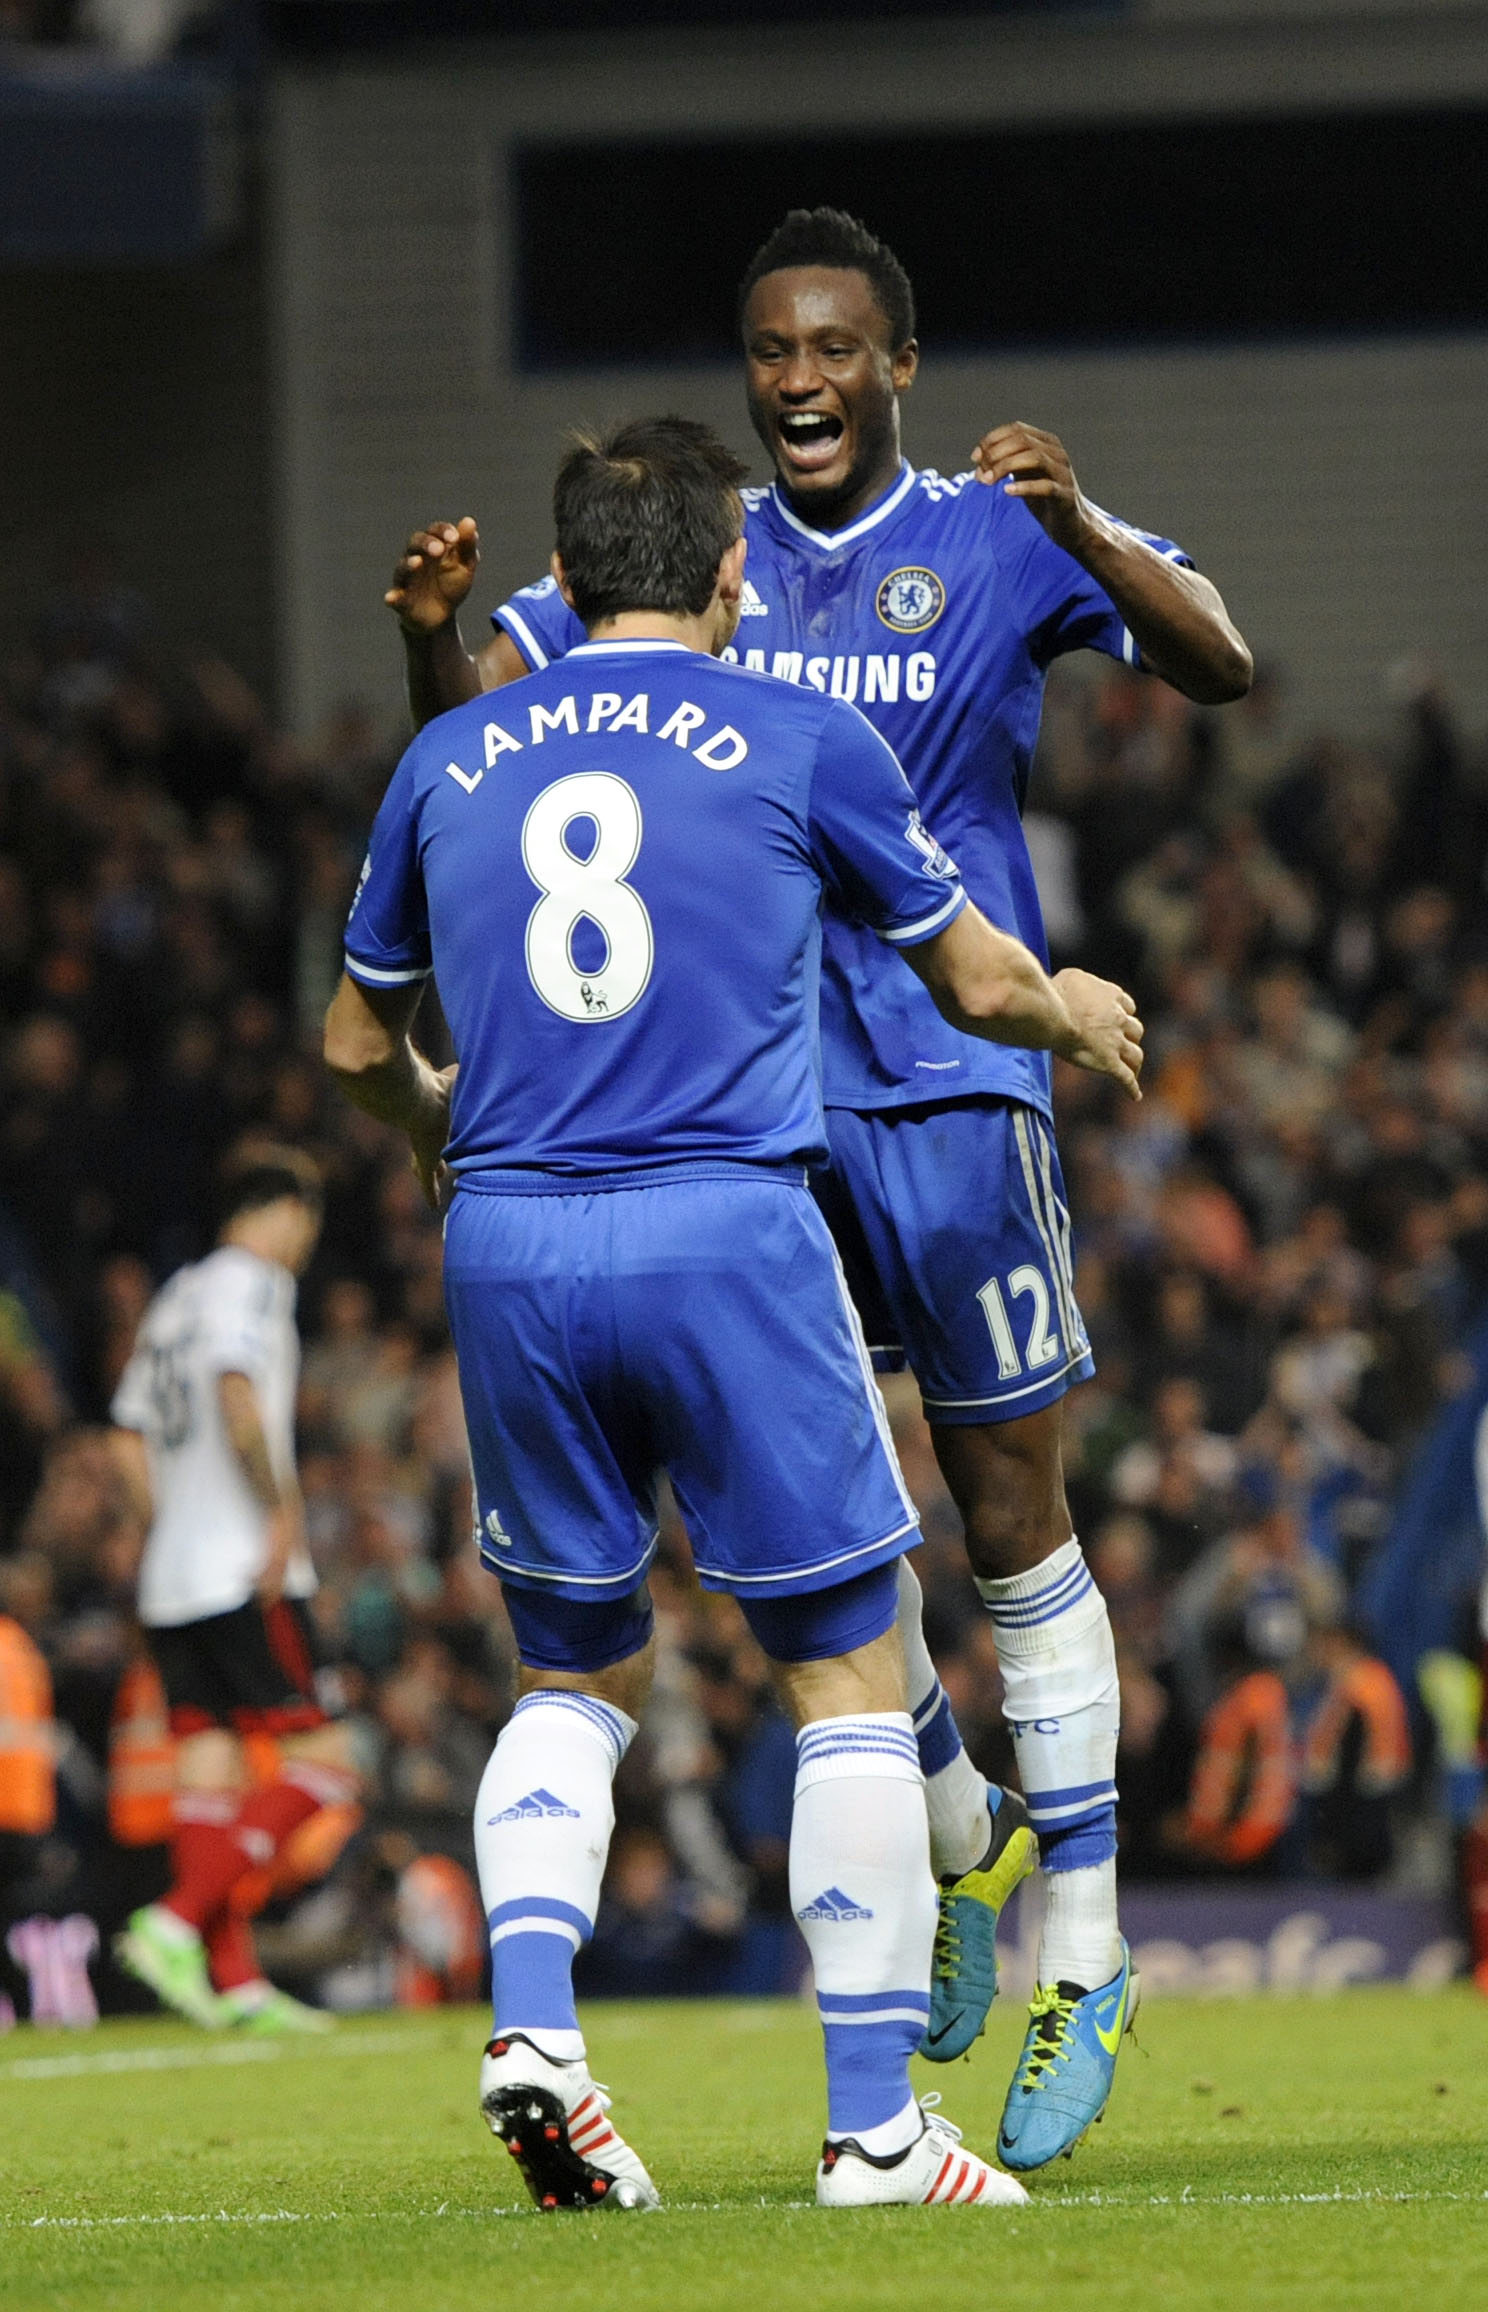 Mikel hopes Lampard is still Chelsea manager when he retires, so he can join as assistant